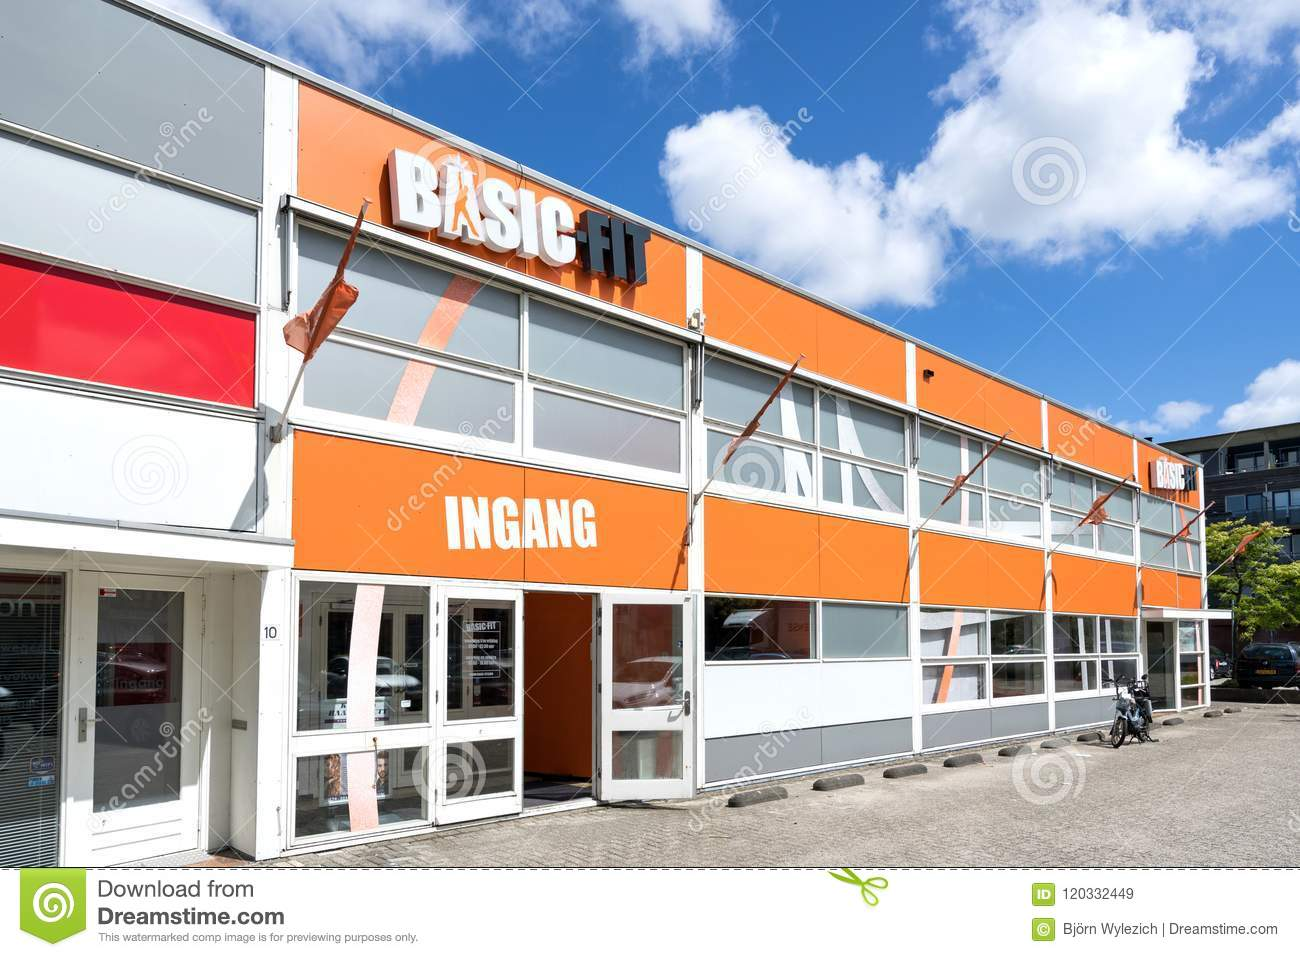 Delft Brand Basic Fit Fitness Club In Delft Netherlands Editorial Stock Image